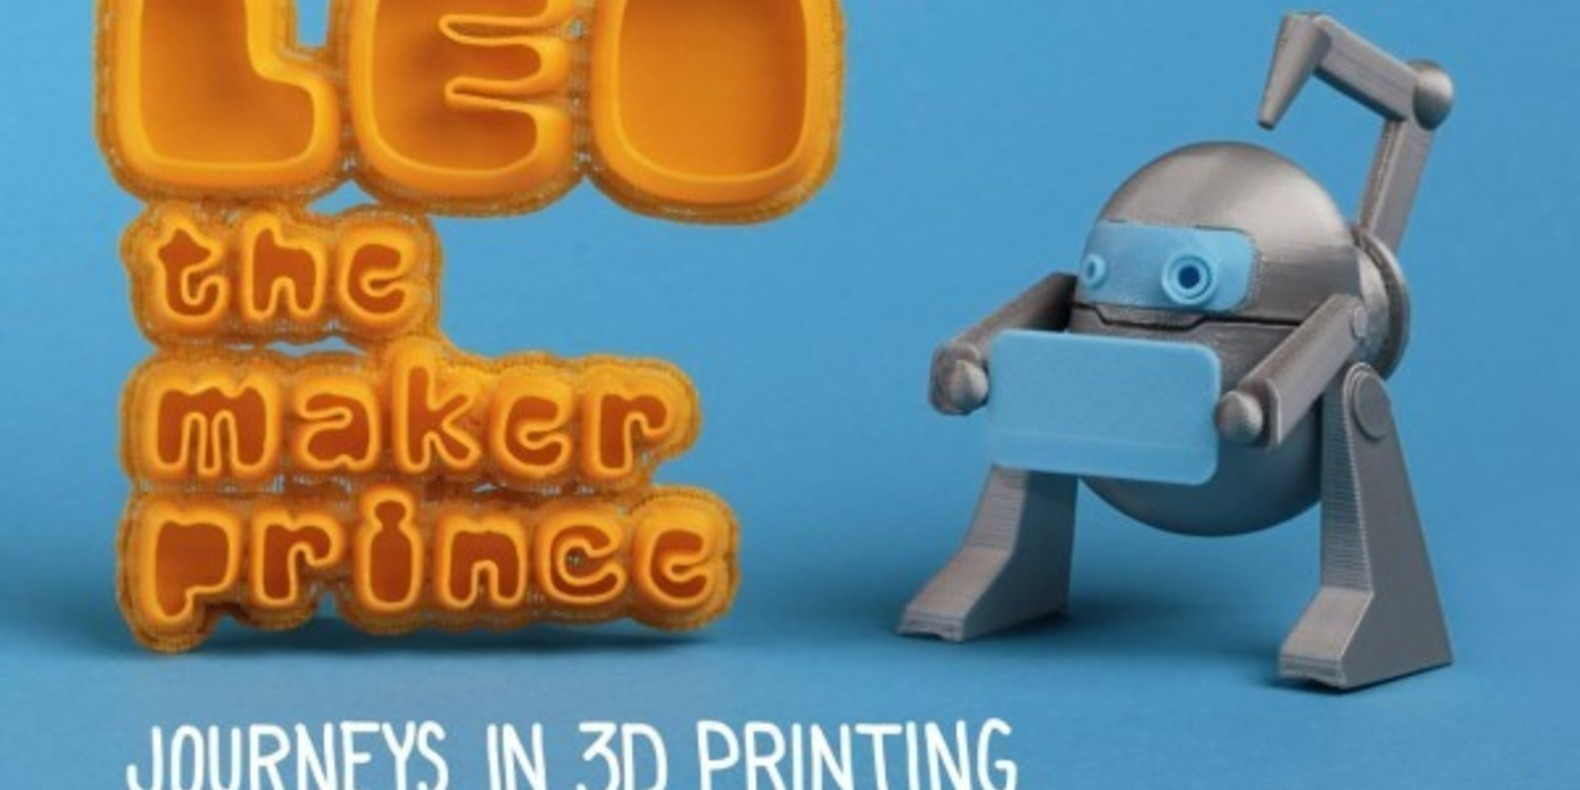 The first book on 3D printing for children